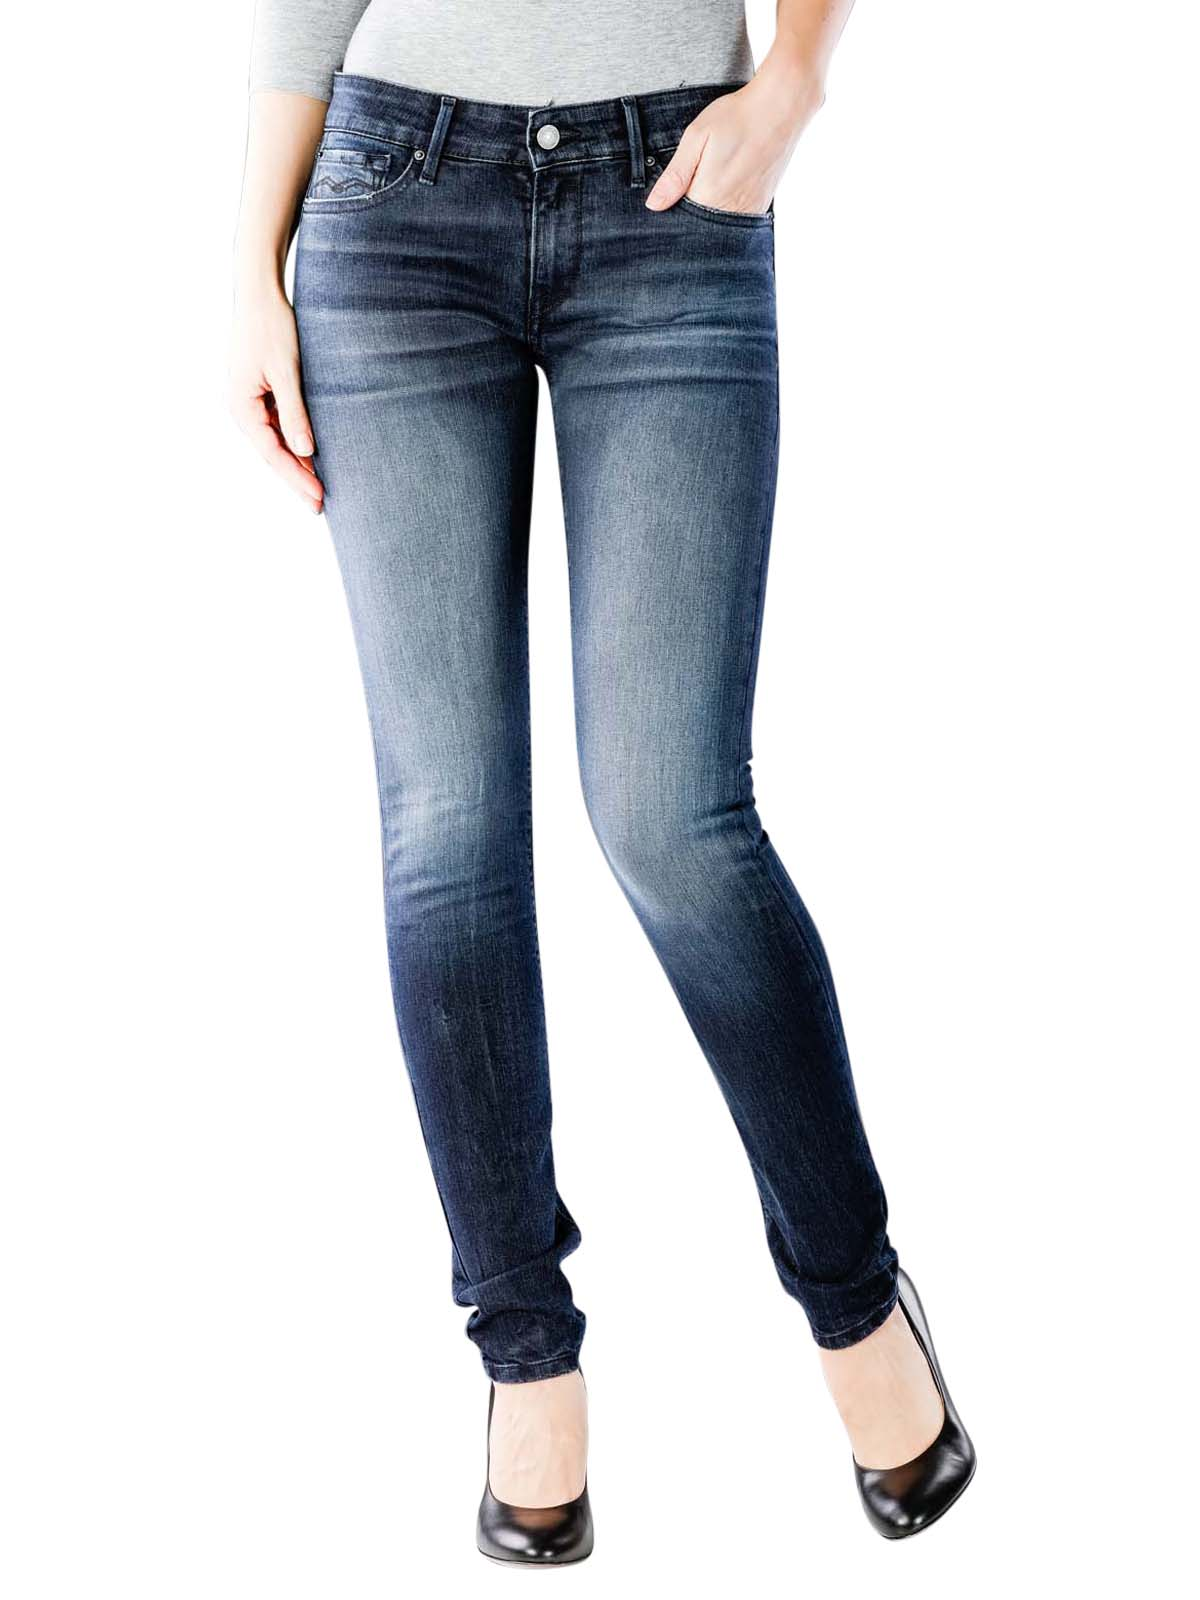 d51f0fa2 McJeans.ch - Fast Delivery   Replay Luz Jeans Skinny 247   Free Shipping -  Free Returns